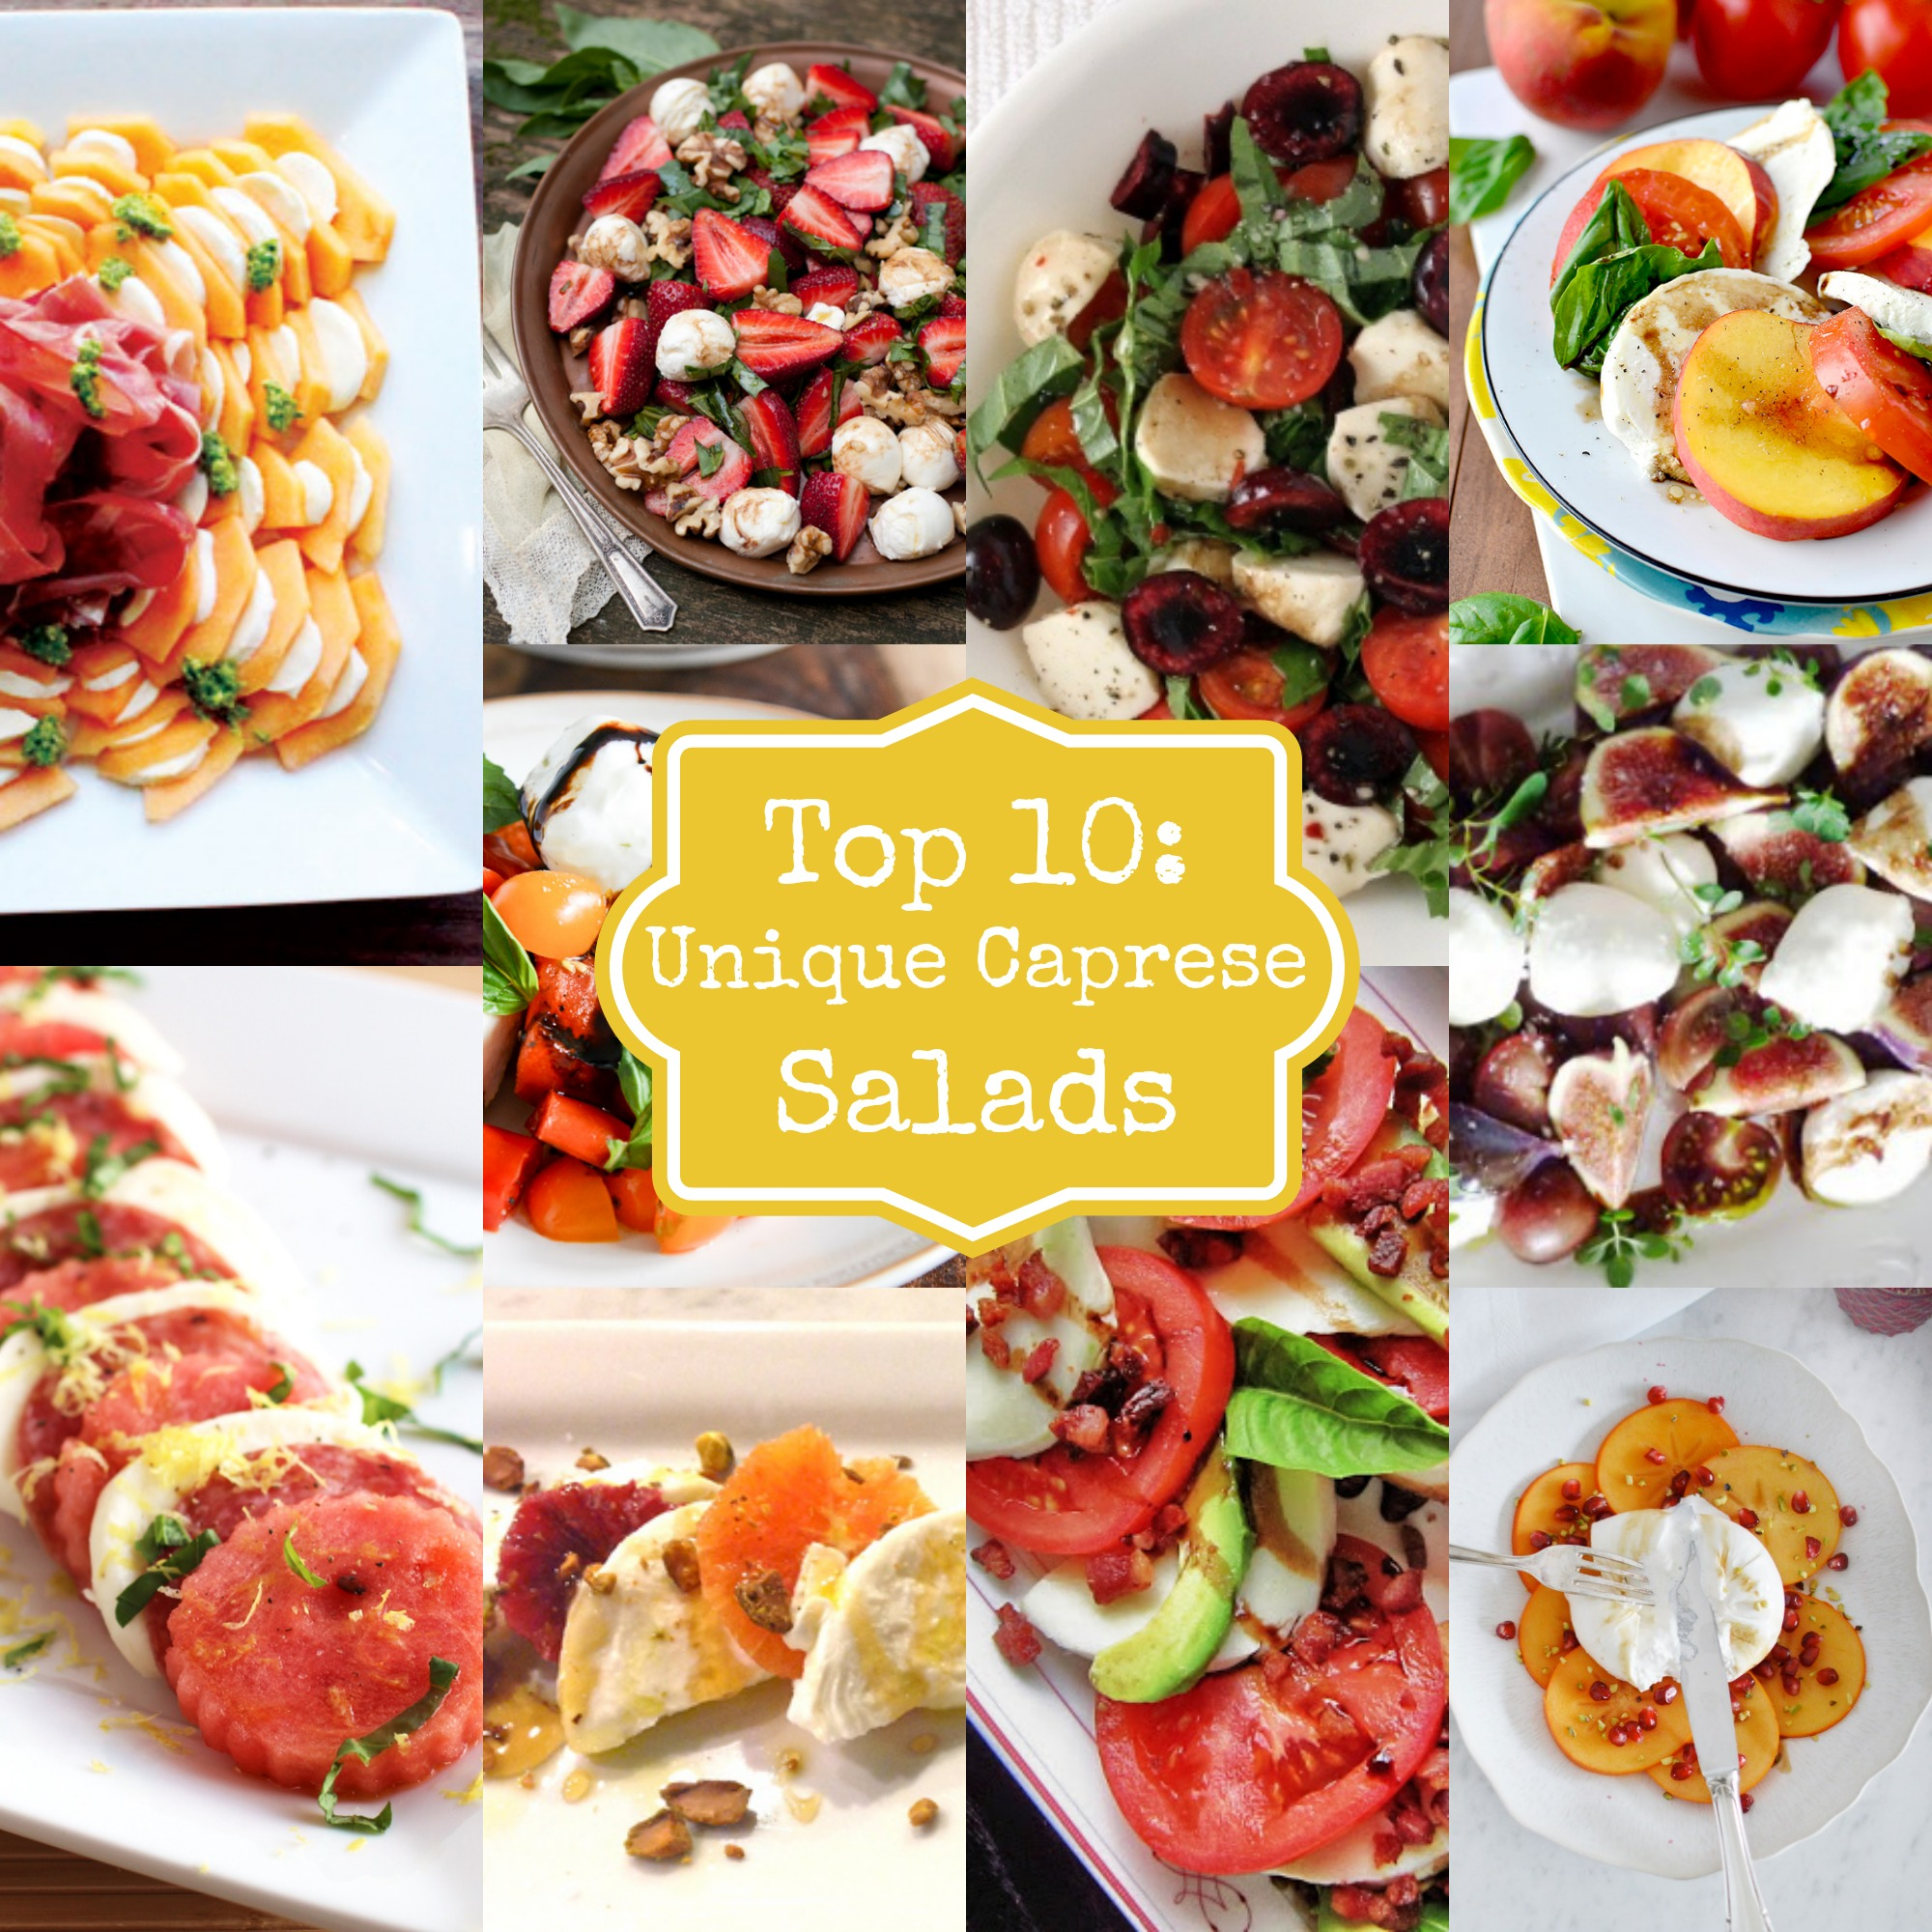 Top 10 Unique Caprese Salads.jpg